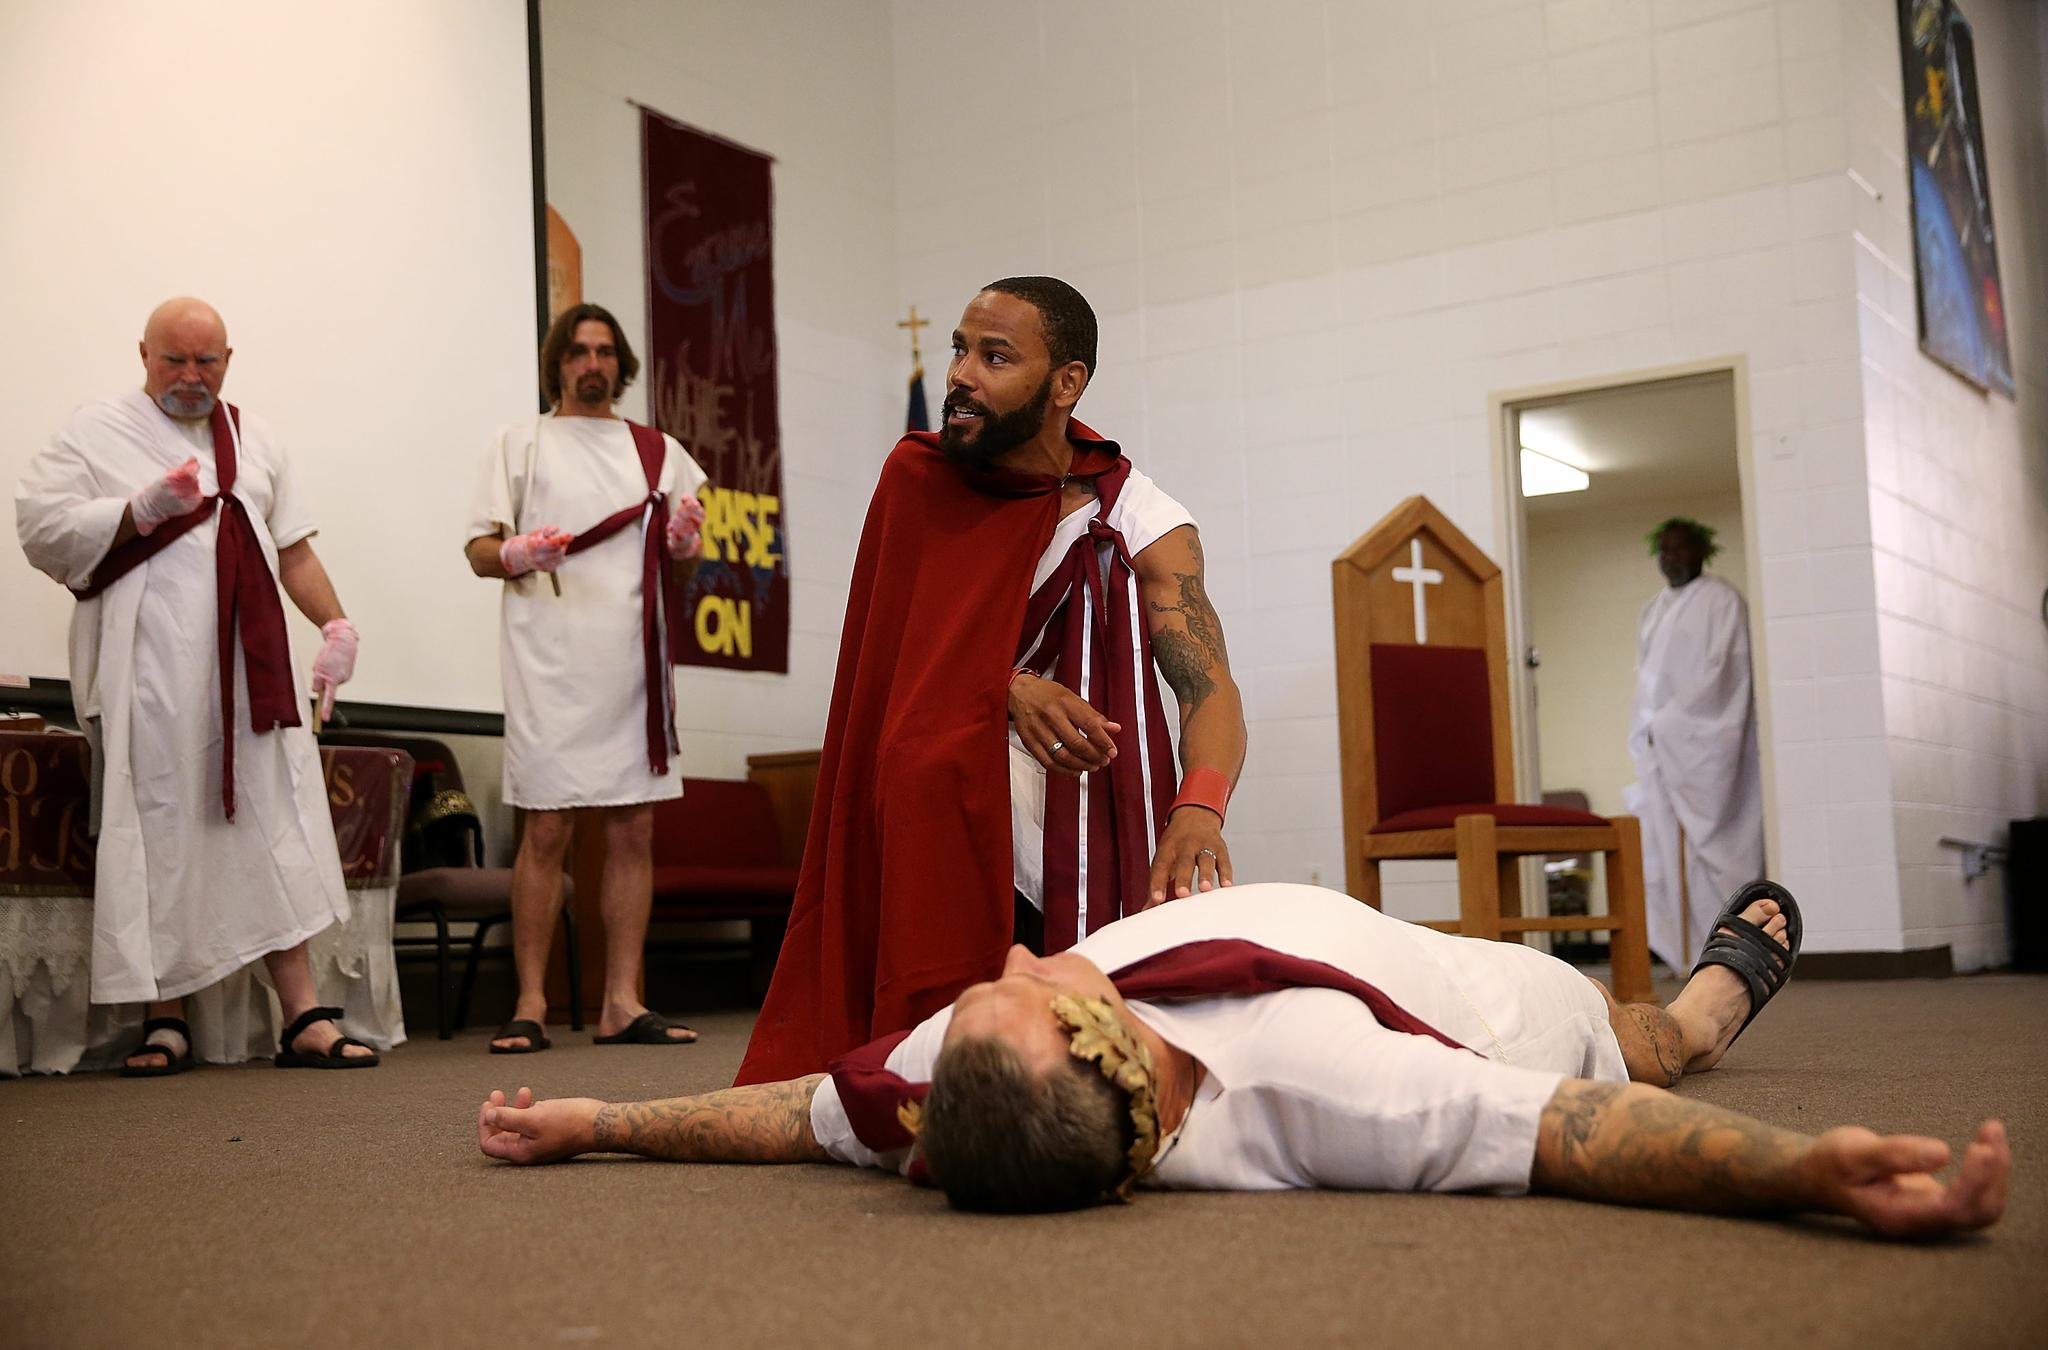 San Quentin State Prison inmate LeMar Harrison, center, plays Mark Antony in a production of Shakespeare's Julius Caesar at San Quentin State Prison on May 15, 2015. Under the direction of Shakespeare for Social Justice, San Quentin State Prison inmates are performing Shakespearean plays for inmates and a select audience of outside guests.